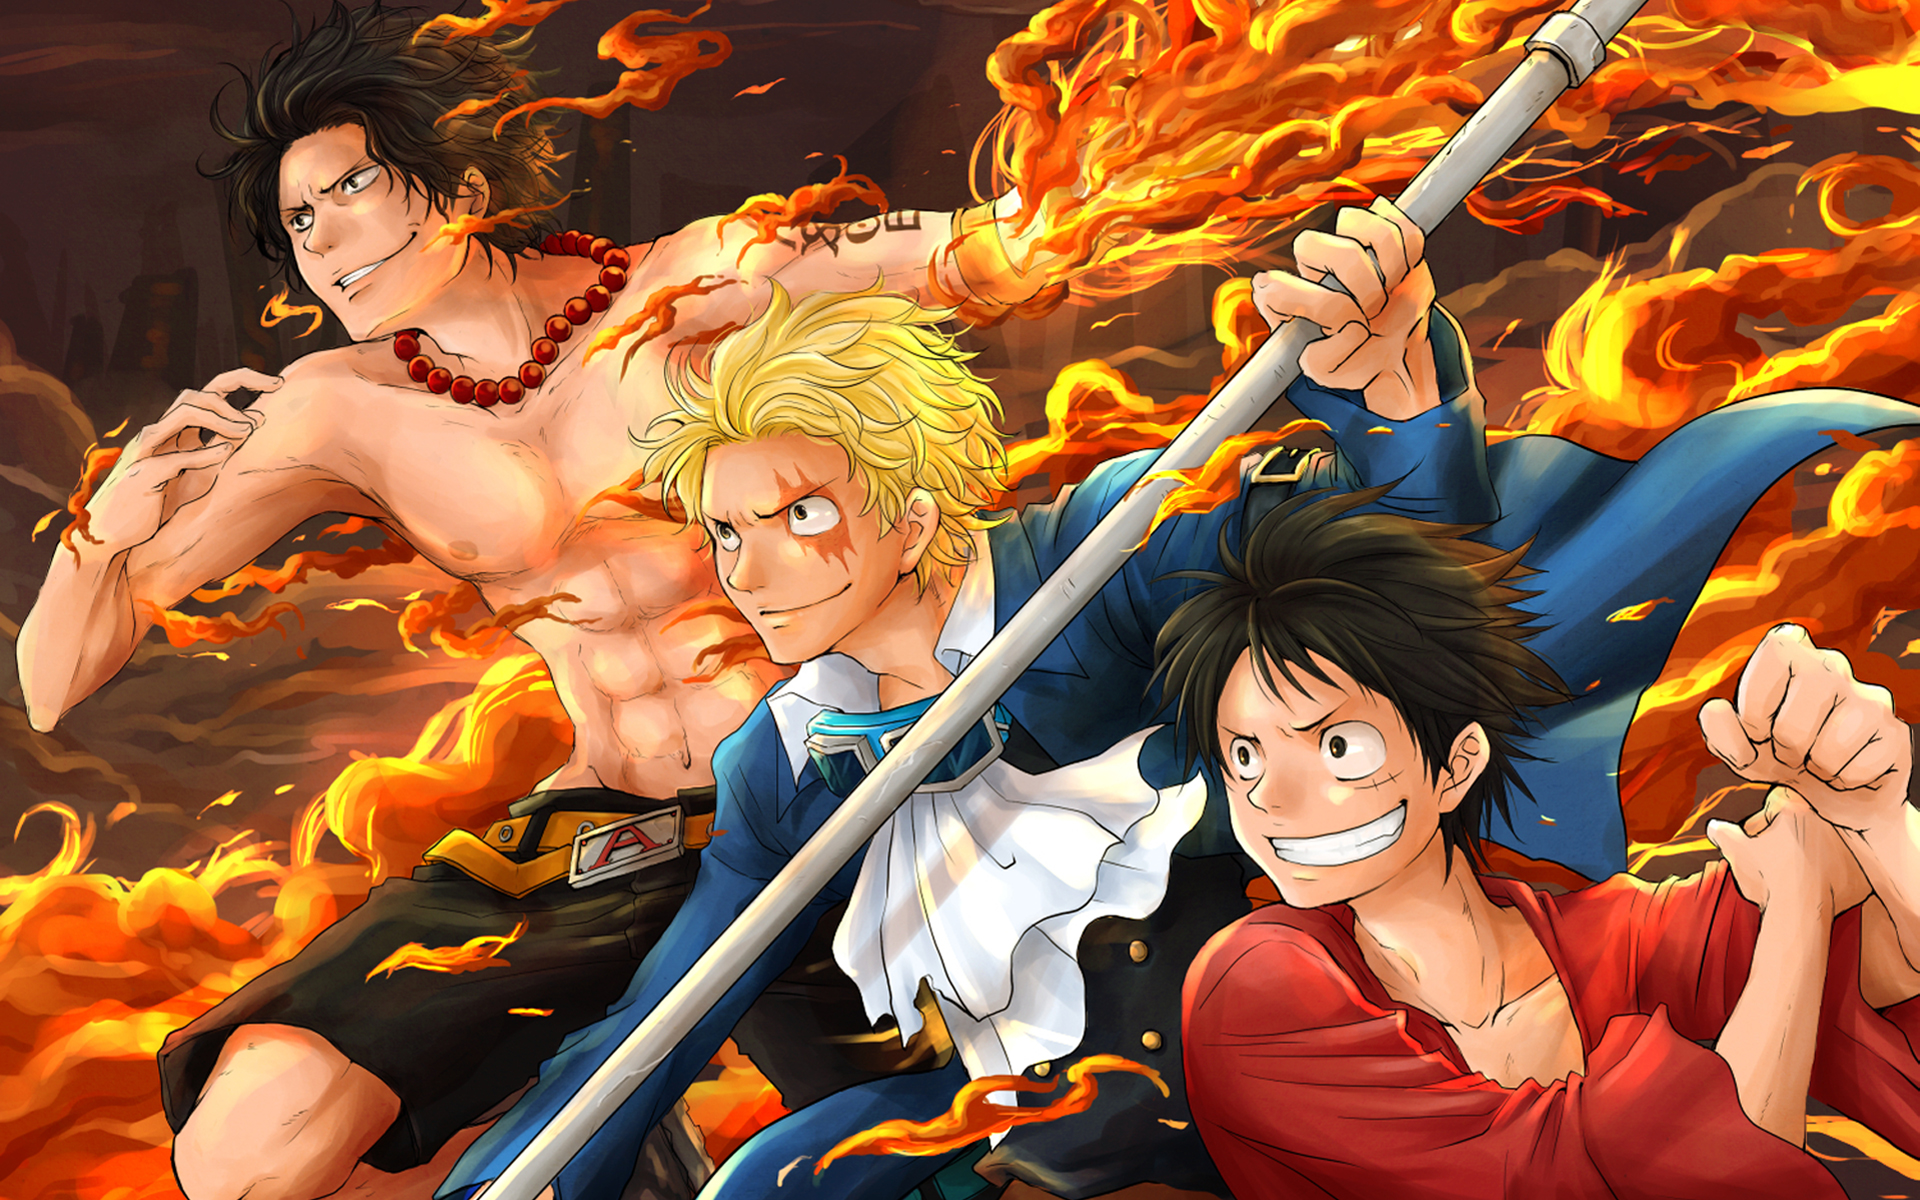 ace and luffy fighting wallpaper - photo #46